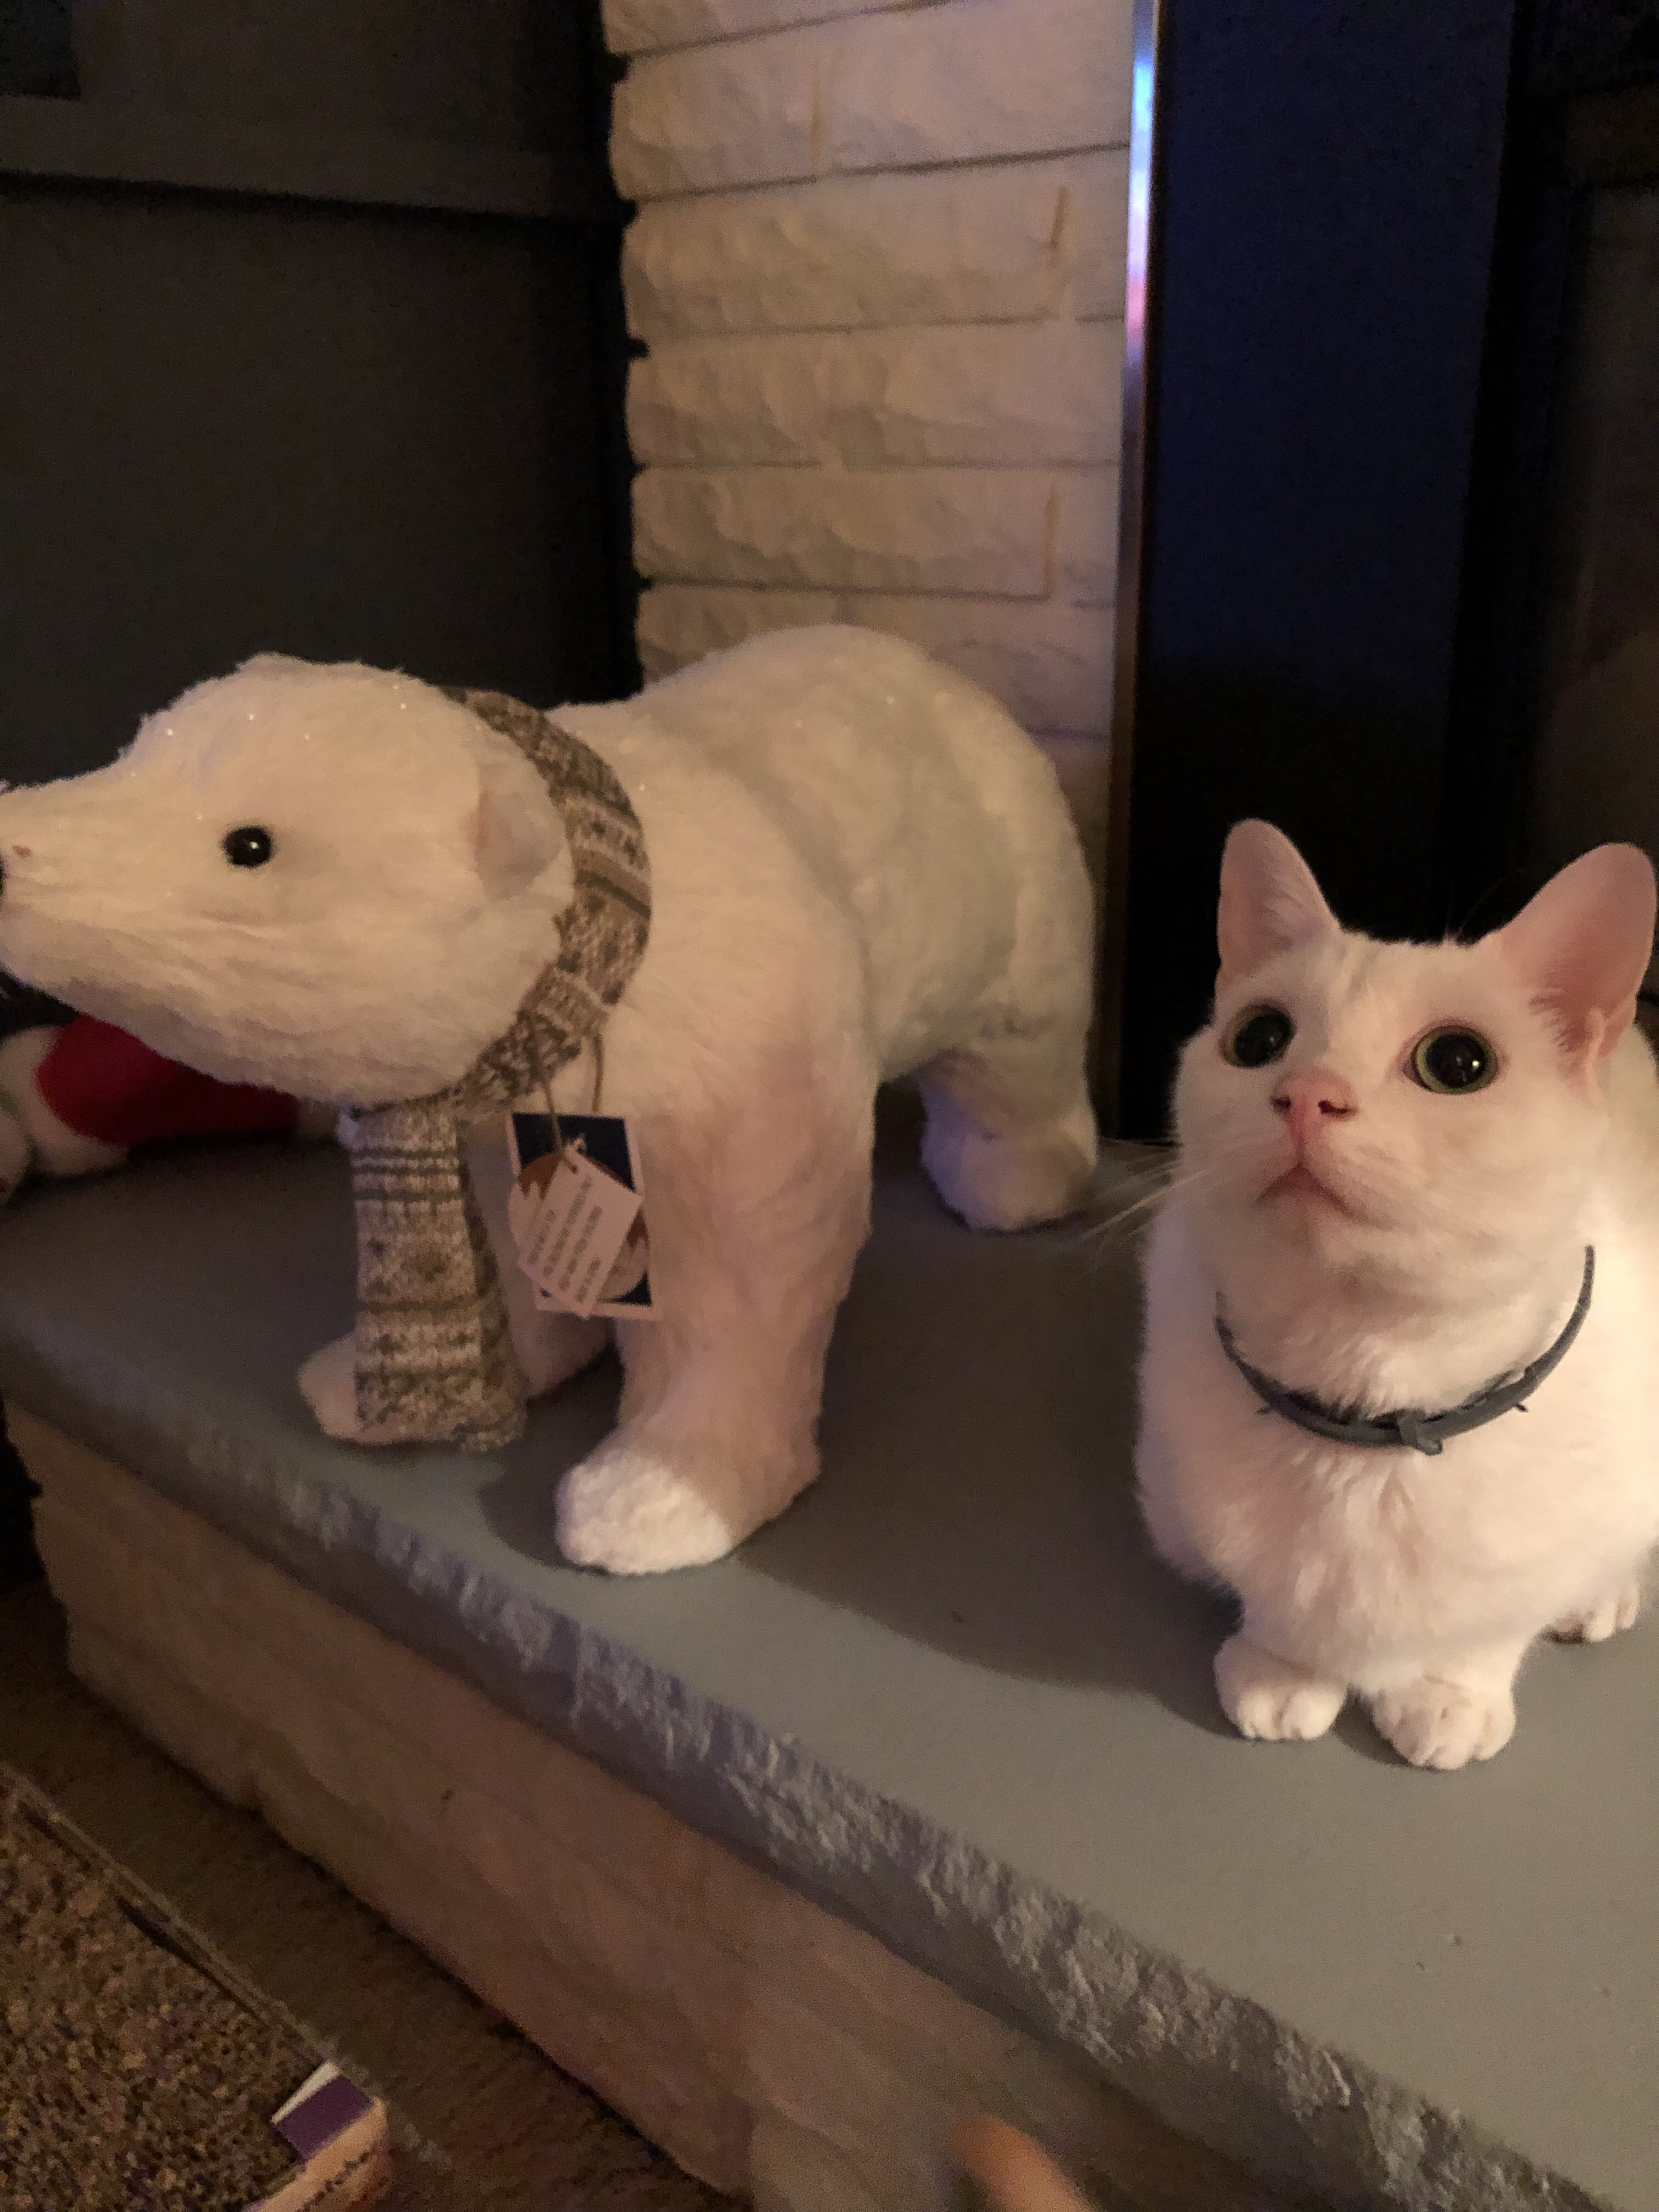 Rosie the cat sitting on the fireplace next to a stuffed polar bear